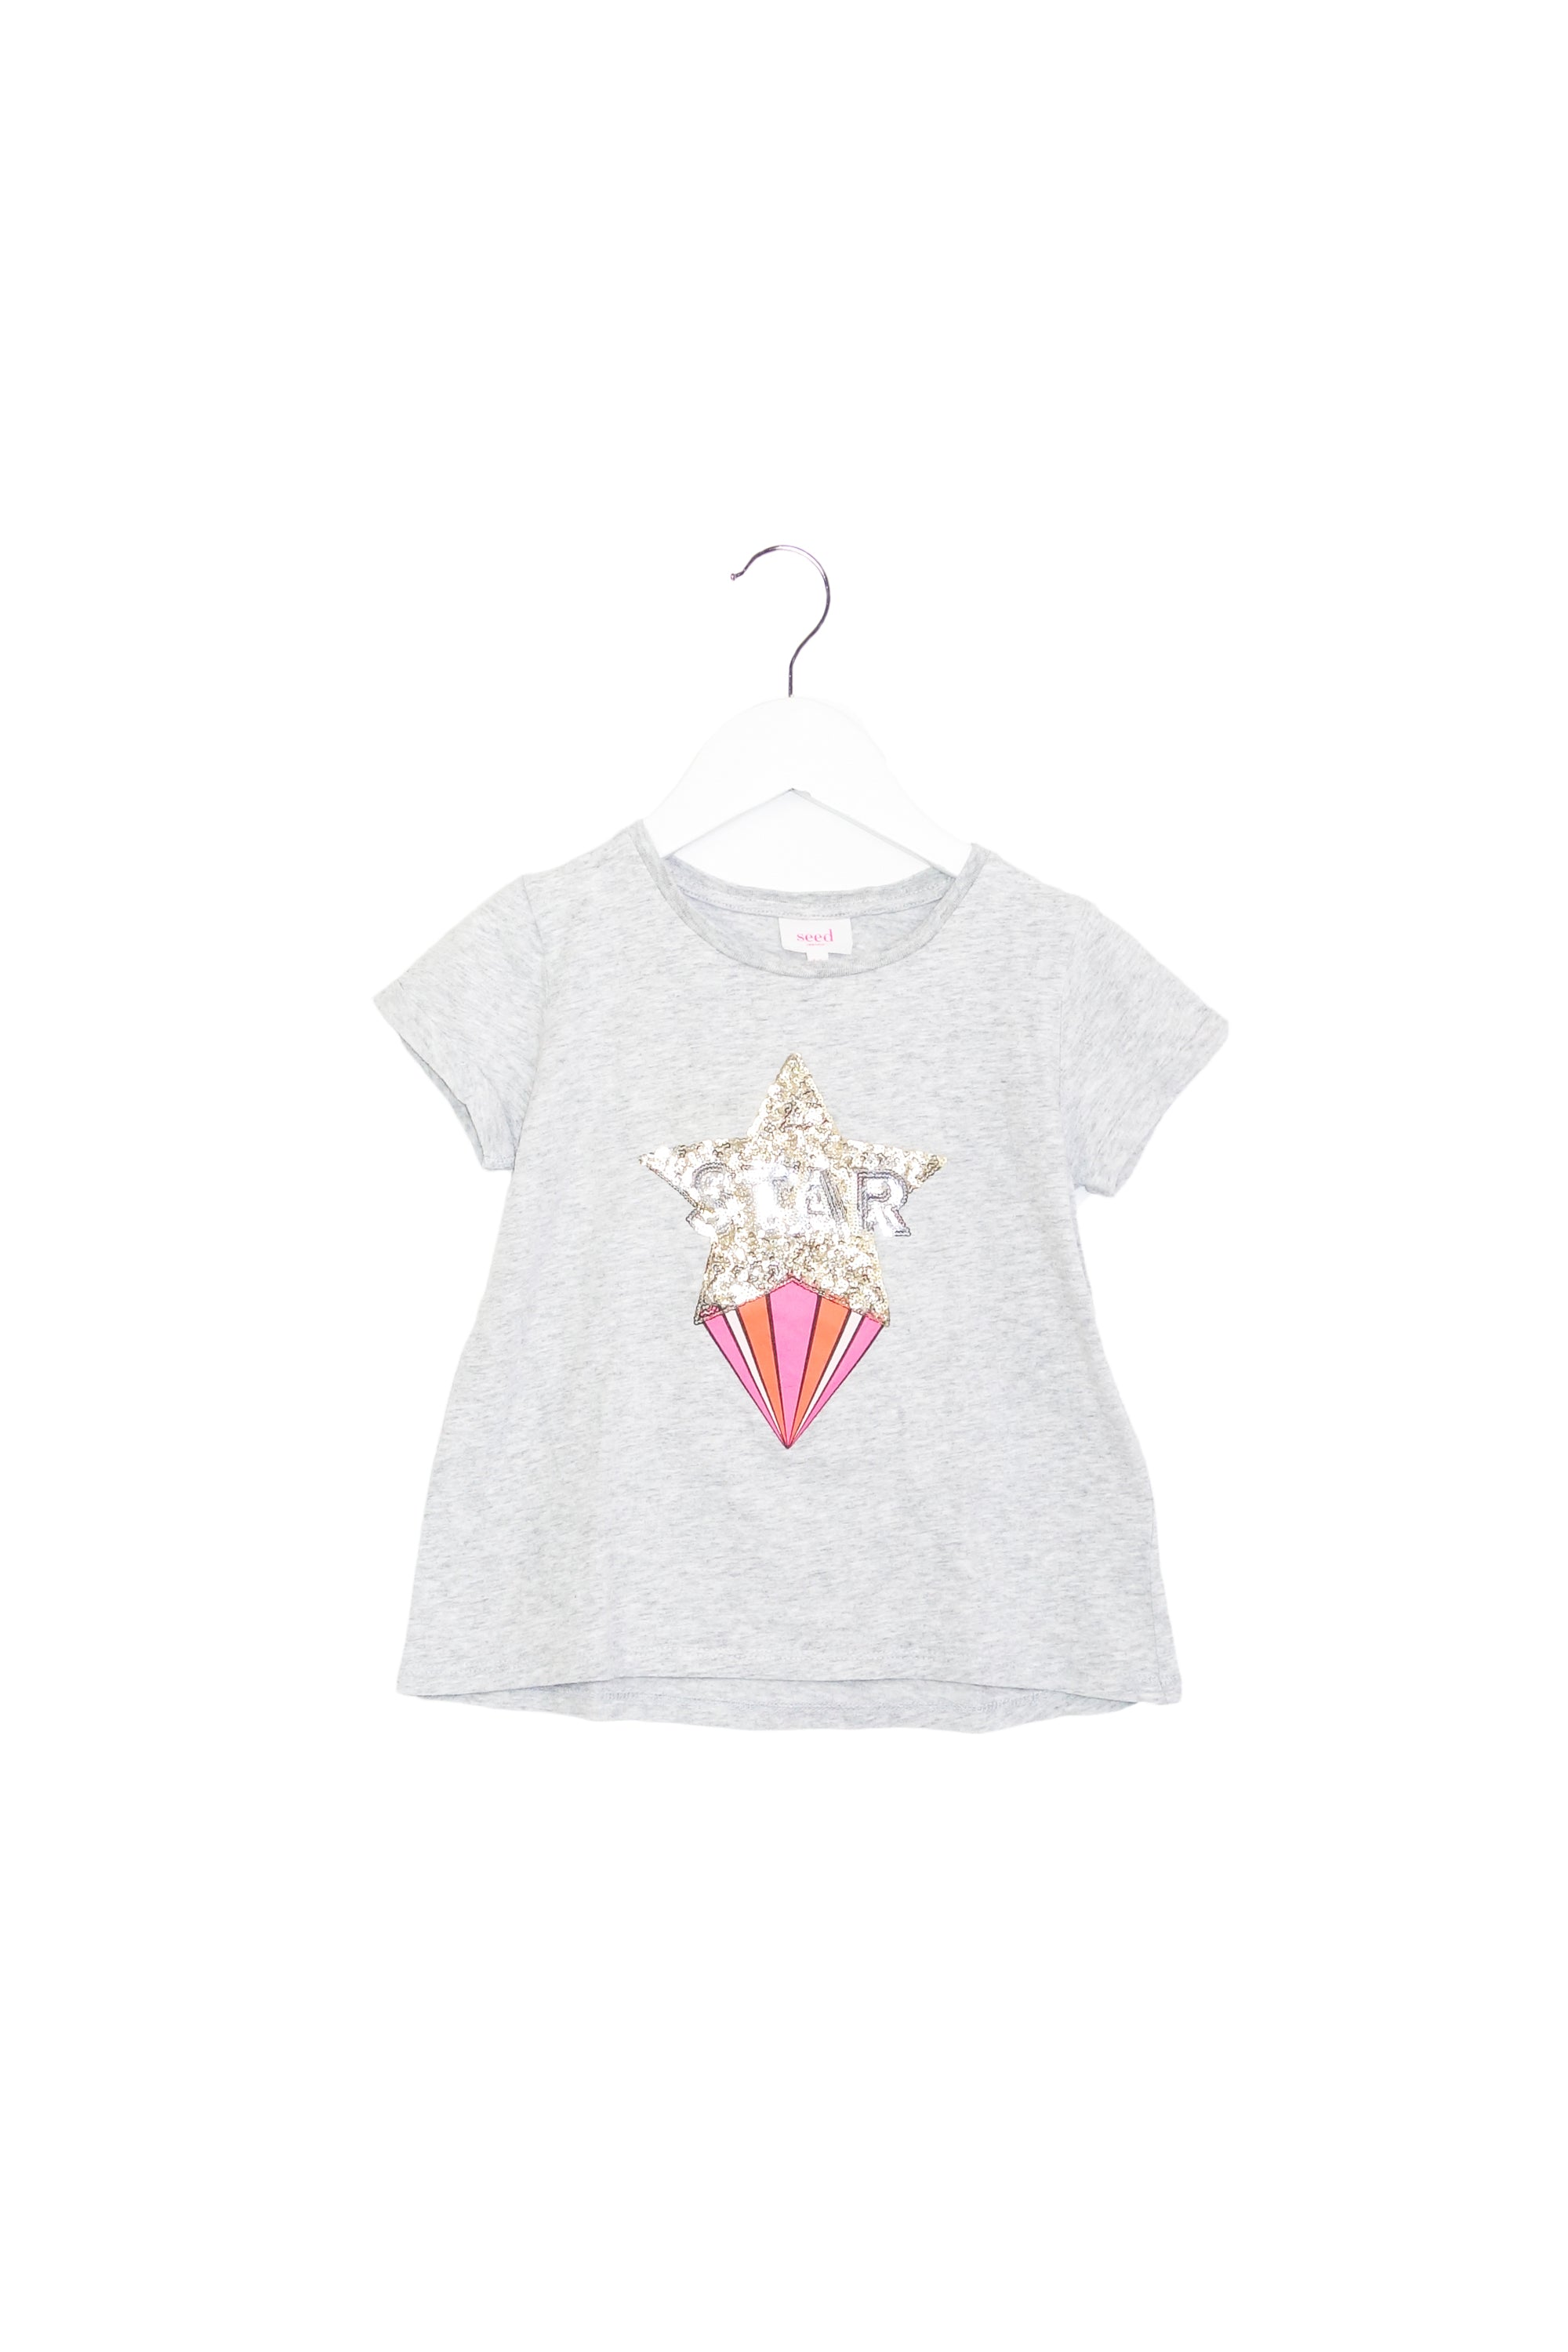 10013185 Seed Kids ~ T-Shirt 4-5T at Retykle